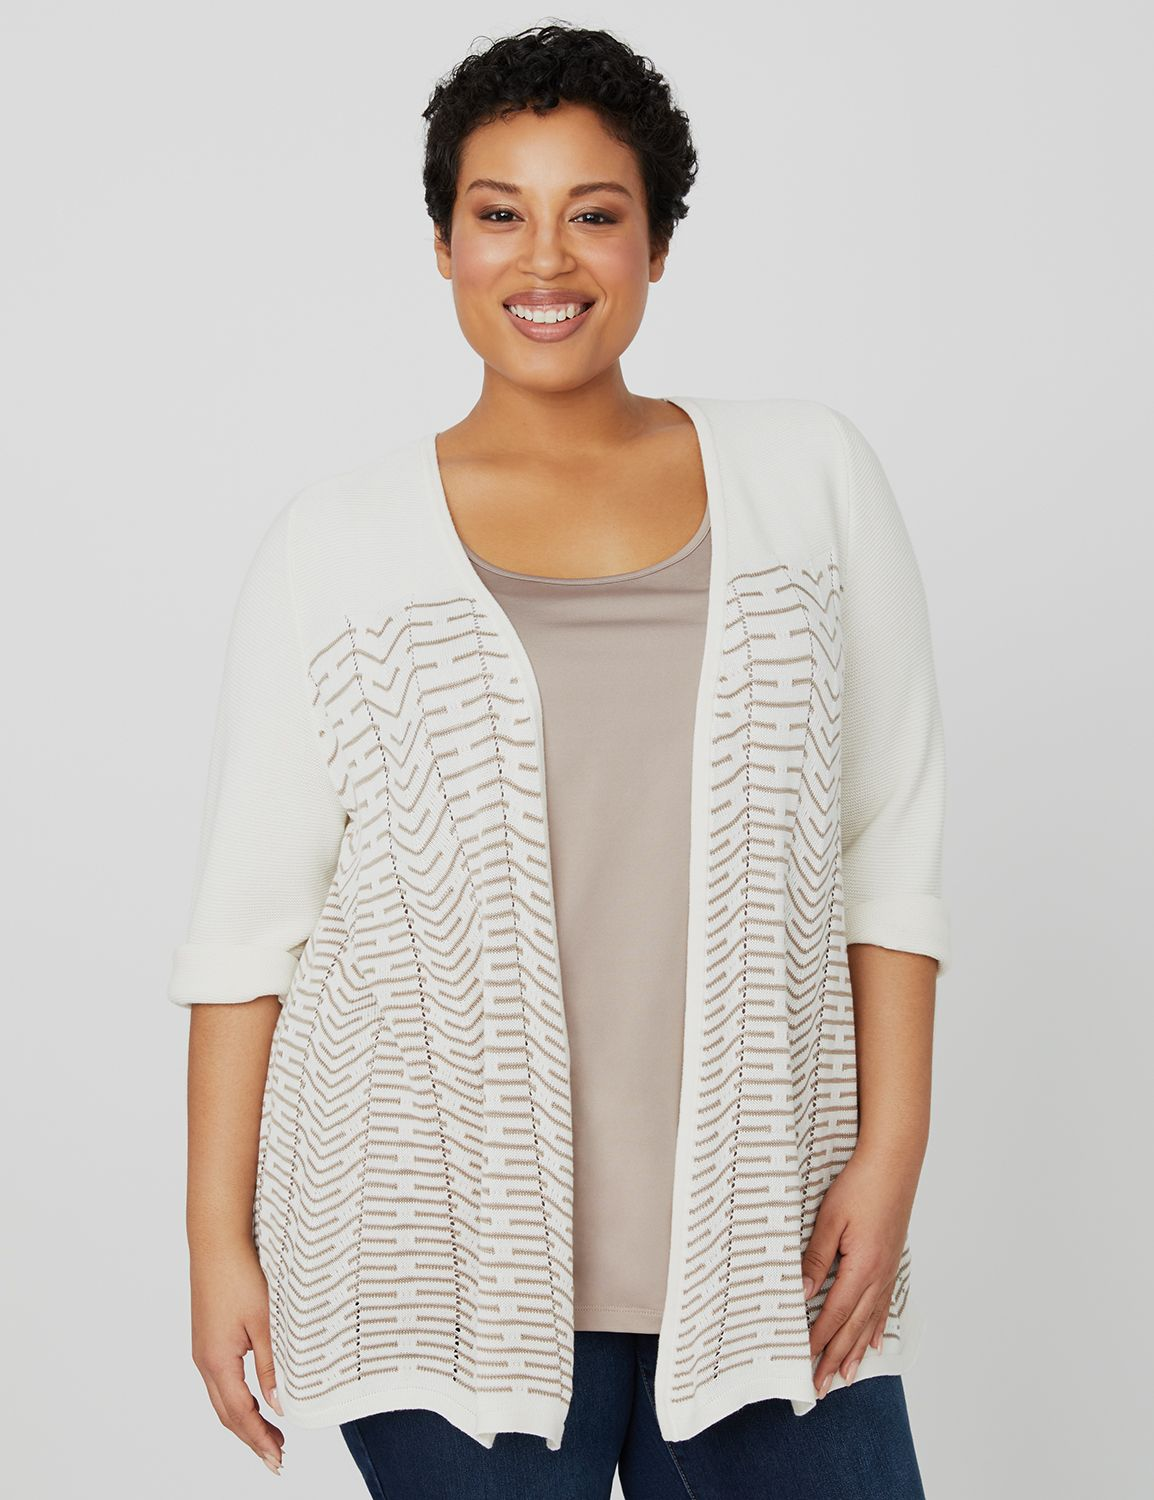 Peaceful Wave Cardigan 1087941 WaveStitch OpenCardi MP-300095848